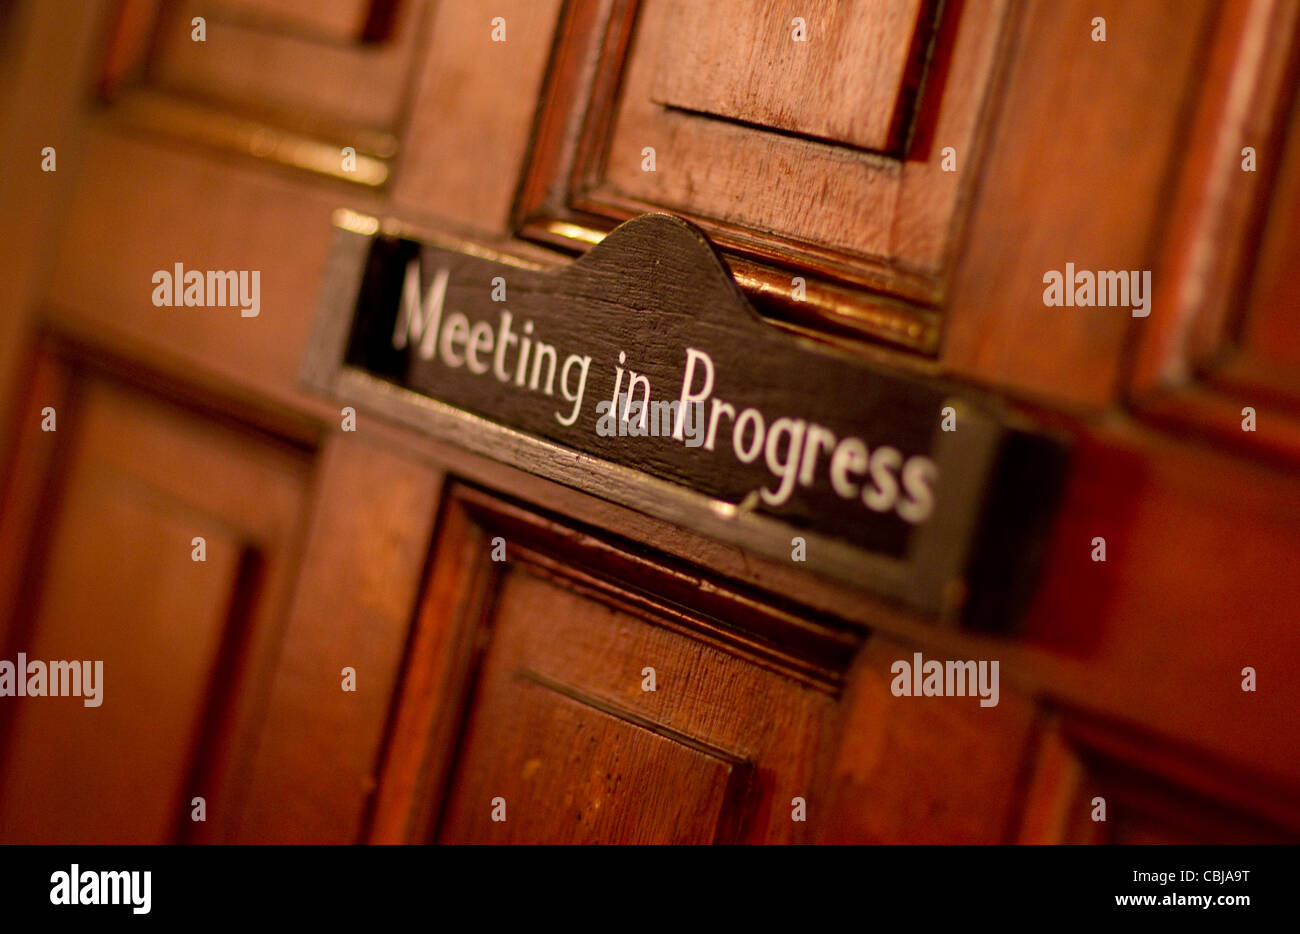 A door sign indicating that a meeting is in progress. - Stock Image